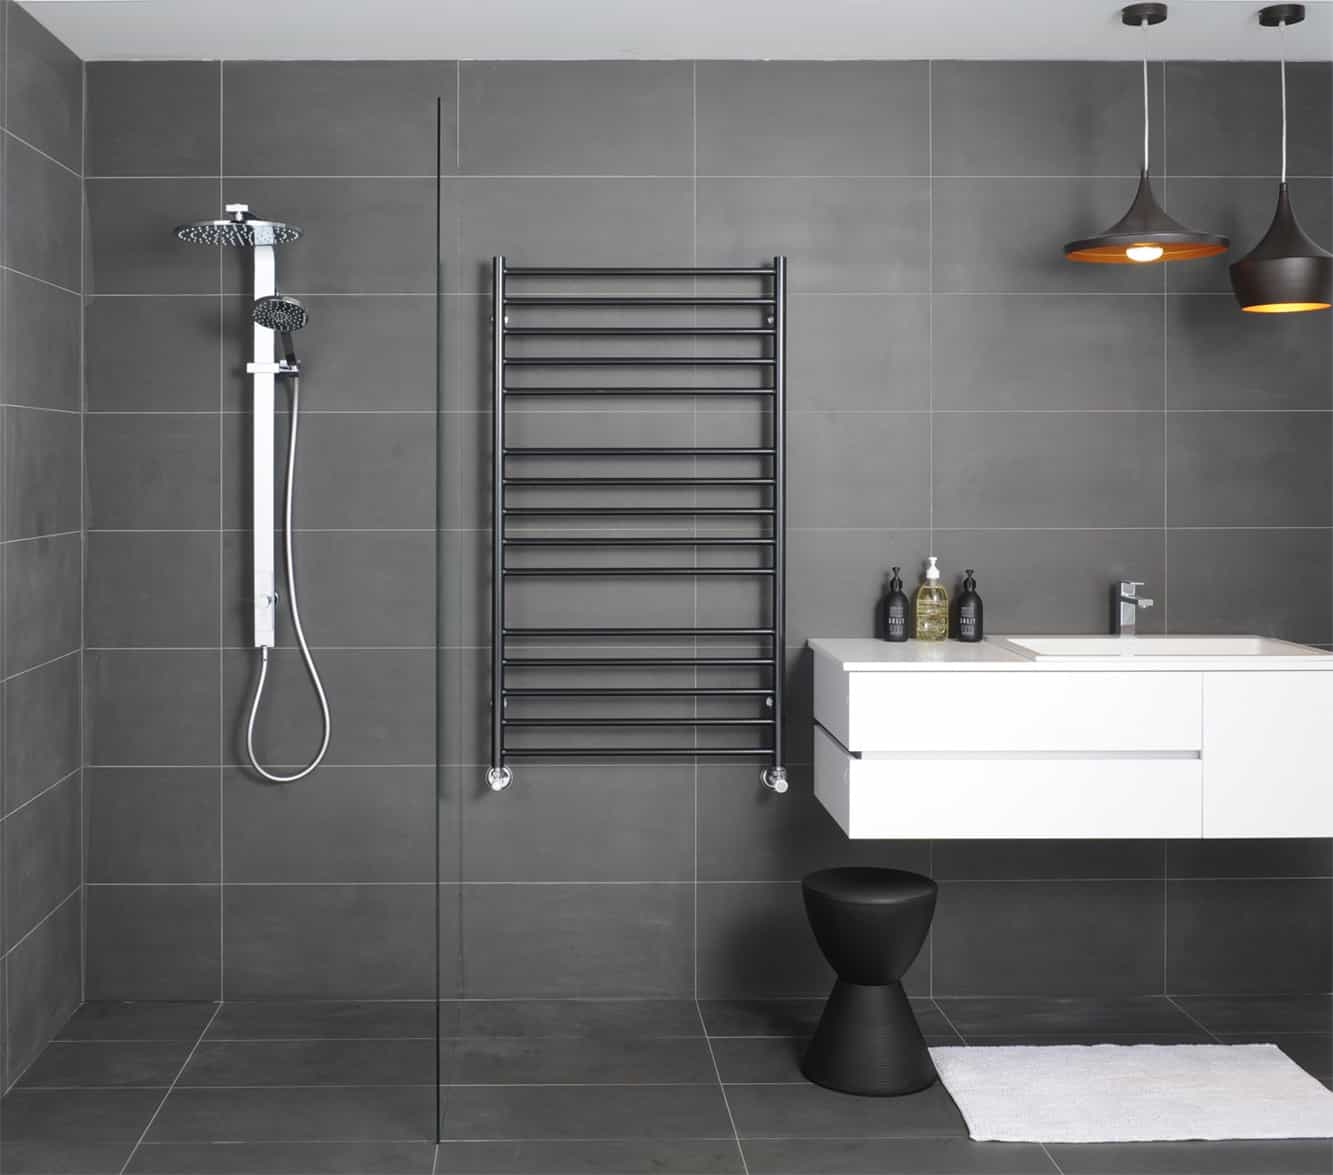 Black Wall Mounted Towel Racks For Contemporary Bathroom (Image 1 of 11)